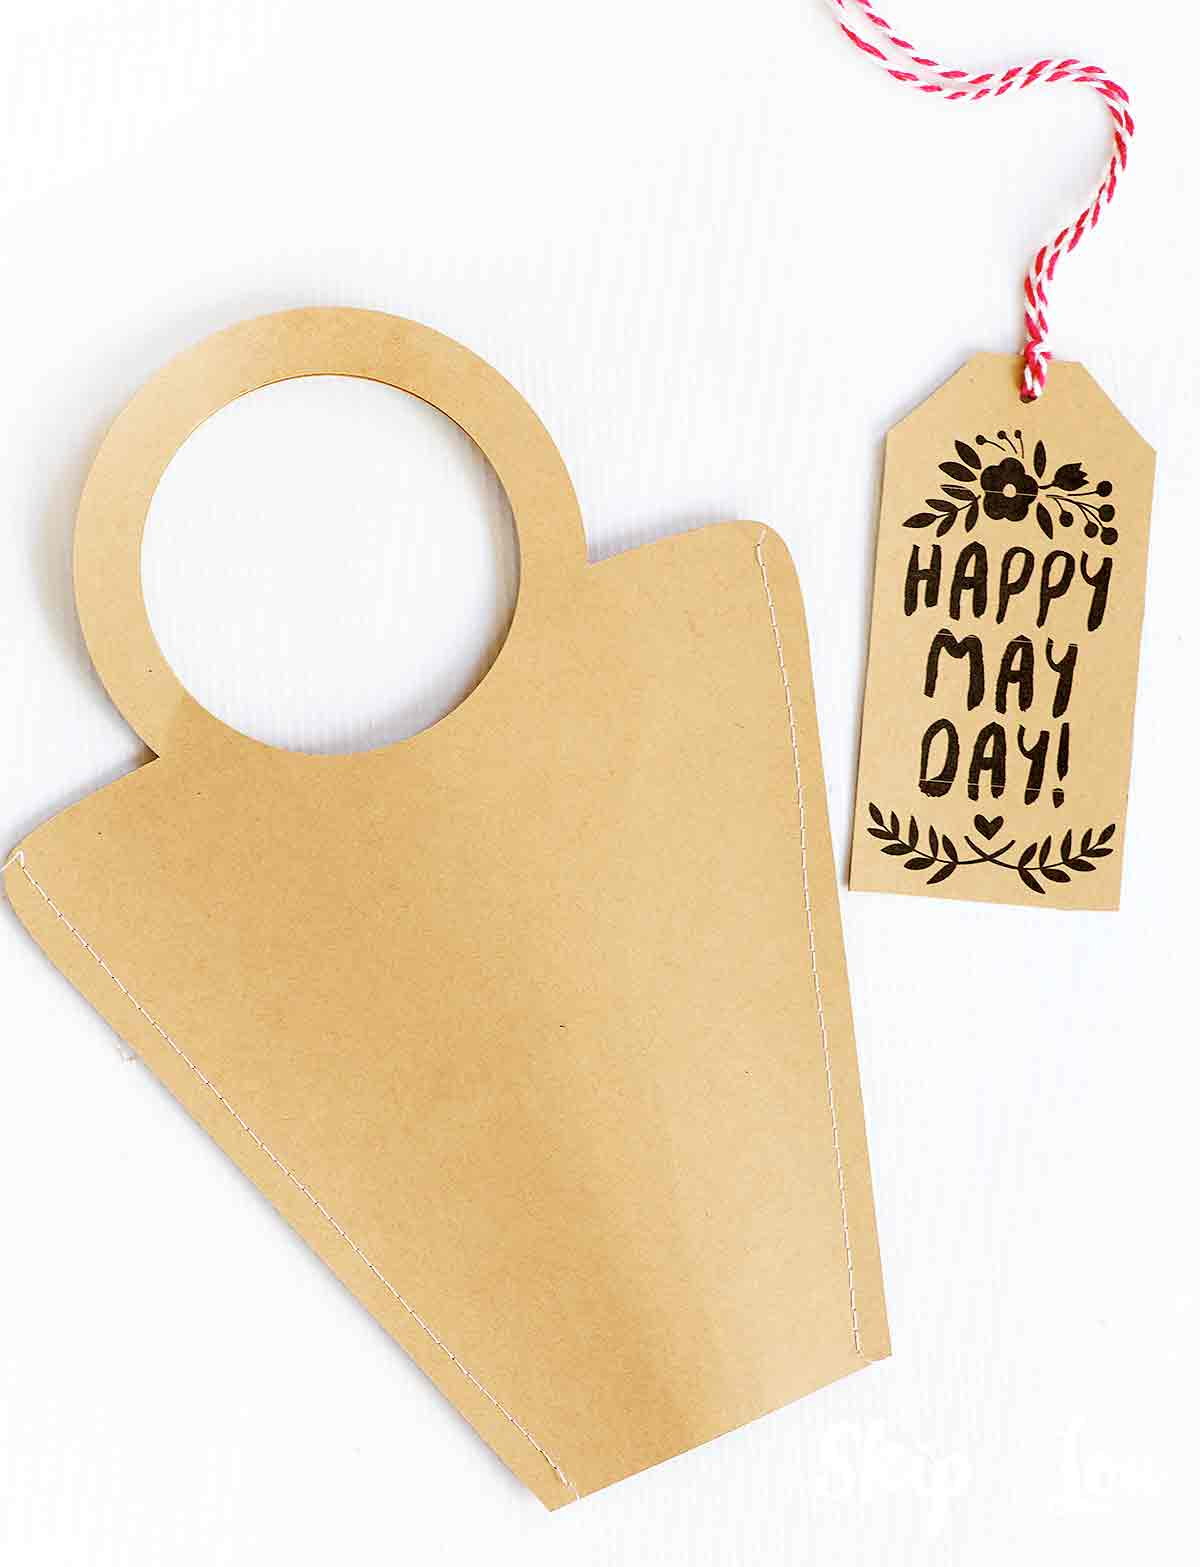 may basket template with happy may day gift tag